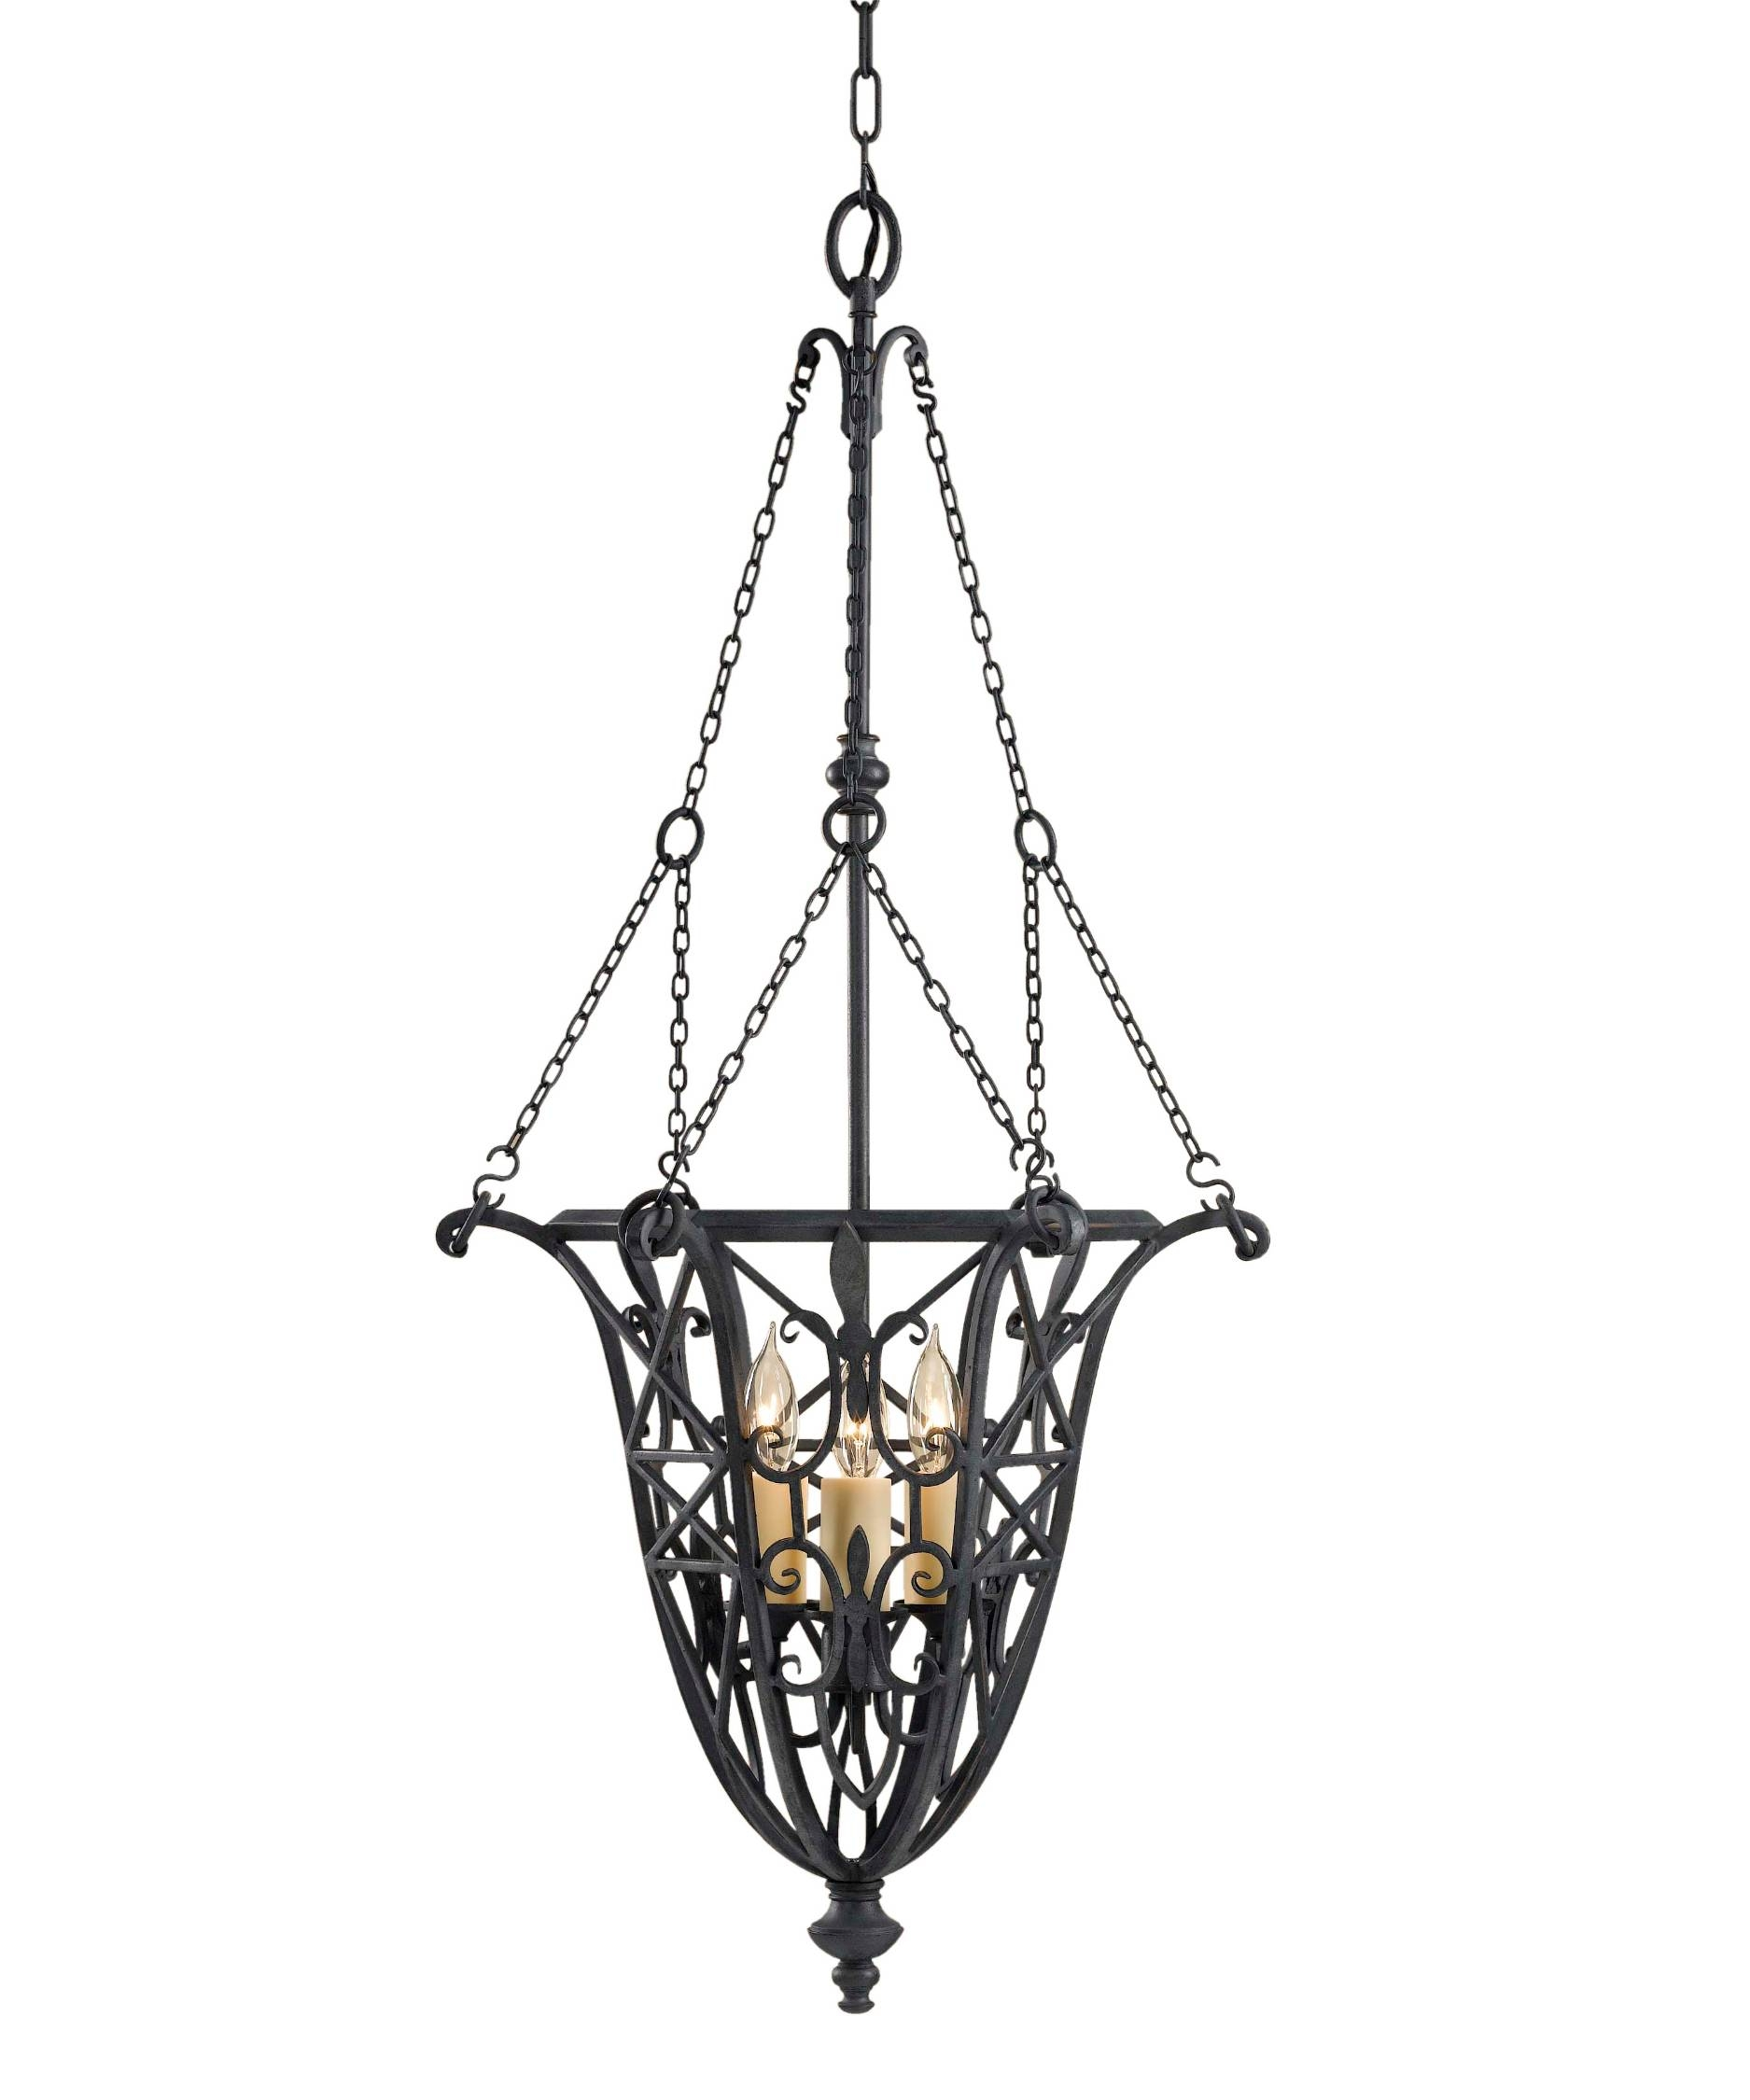 Wrought Iron Mini Pendant Lights And Lighting 2017 Images with regard to Wrought Iron Pendant Lights for Kitchen (Image 14 of 15)